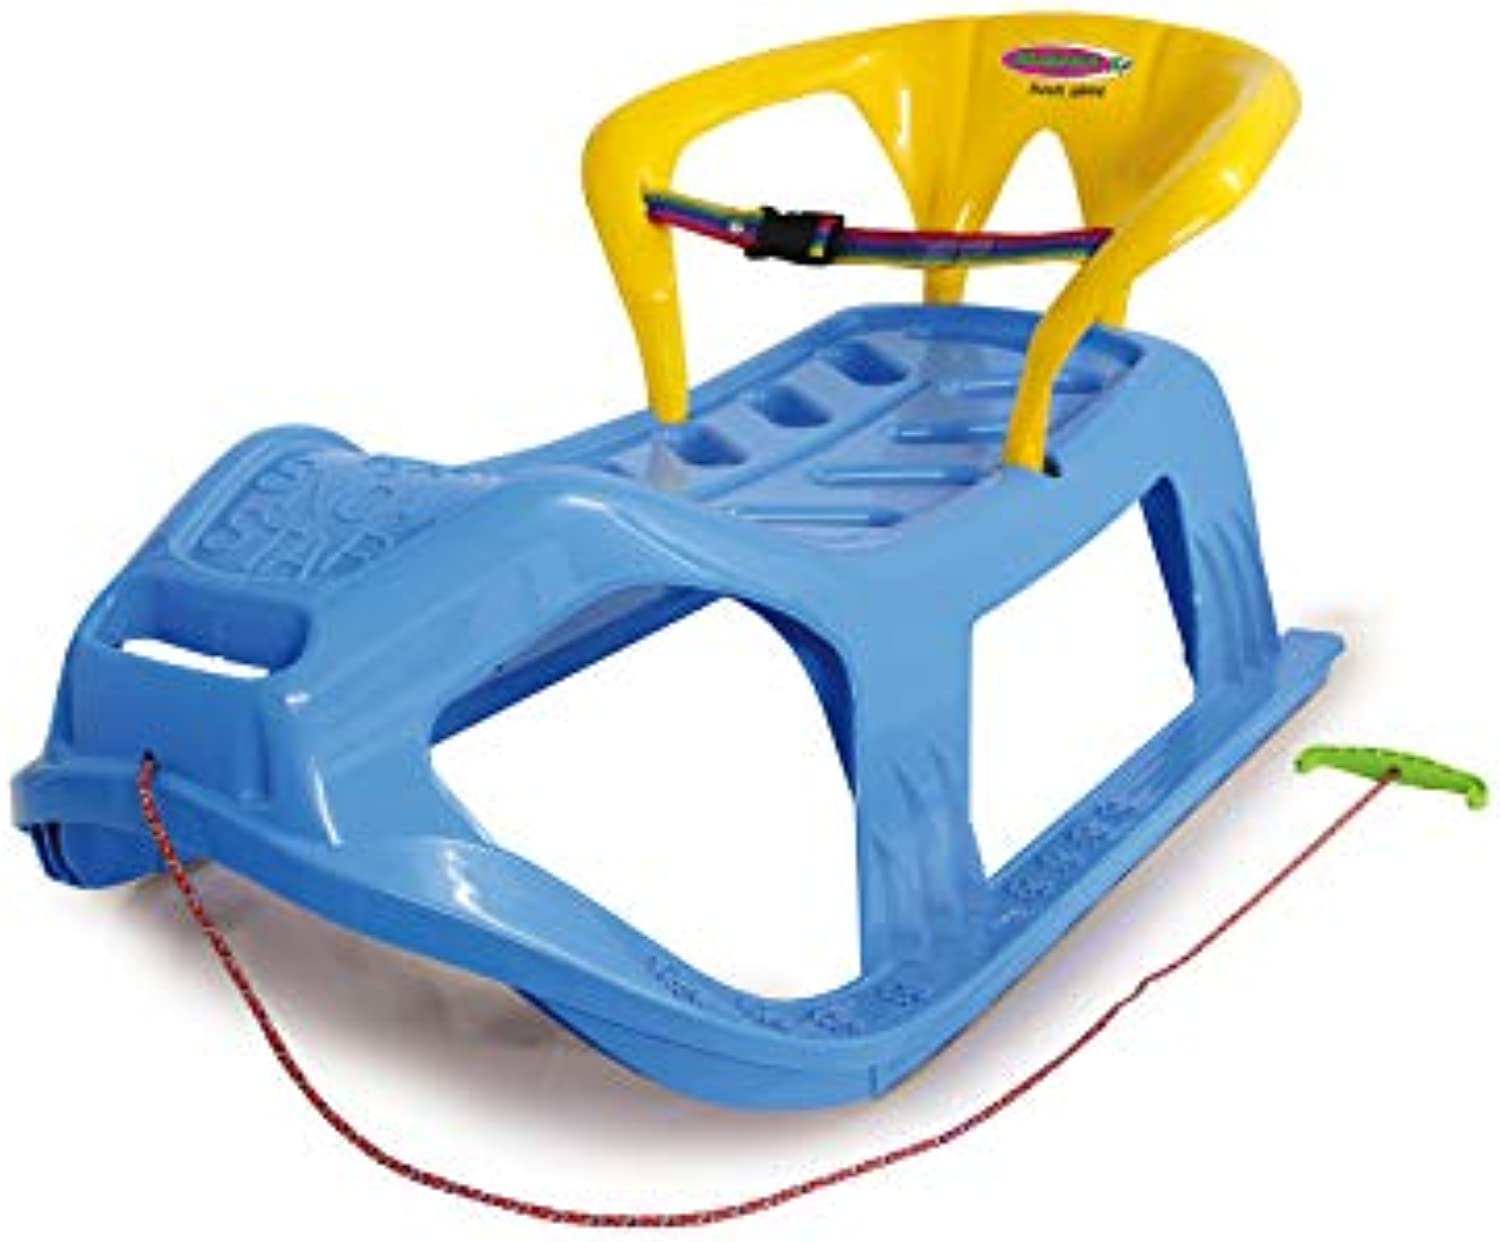 Jamara 460367 460367Snow Play Sled SnowStar 90cm Metal Runners, Predection Against Tipping, Backrest incl. Safety Strap, bluee